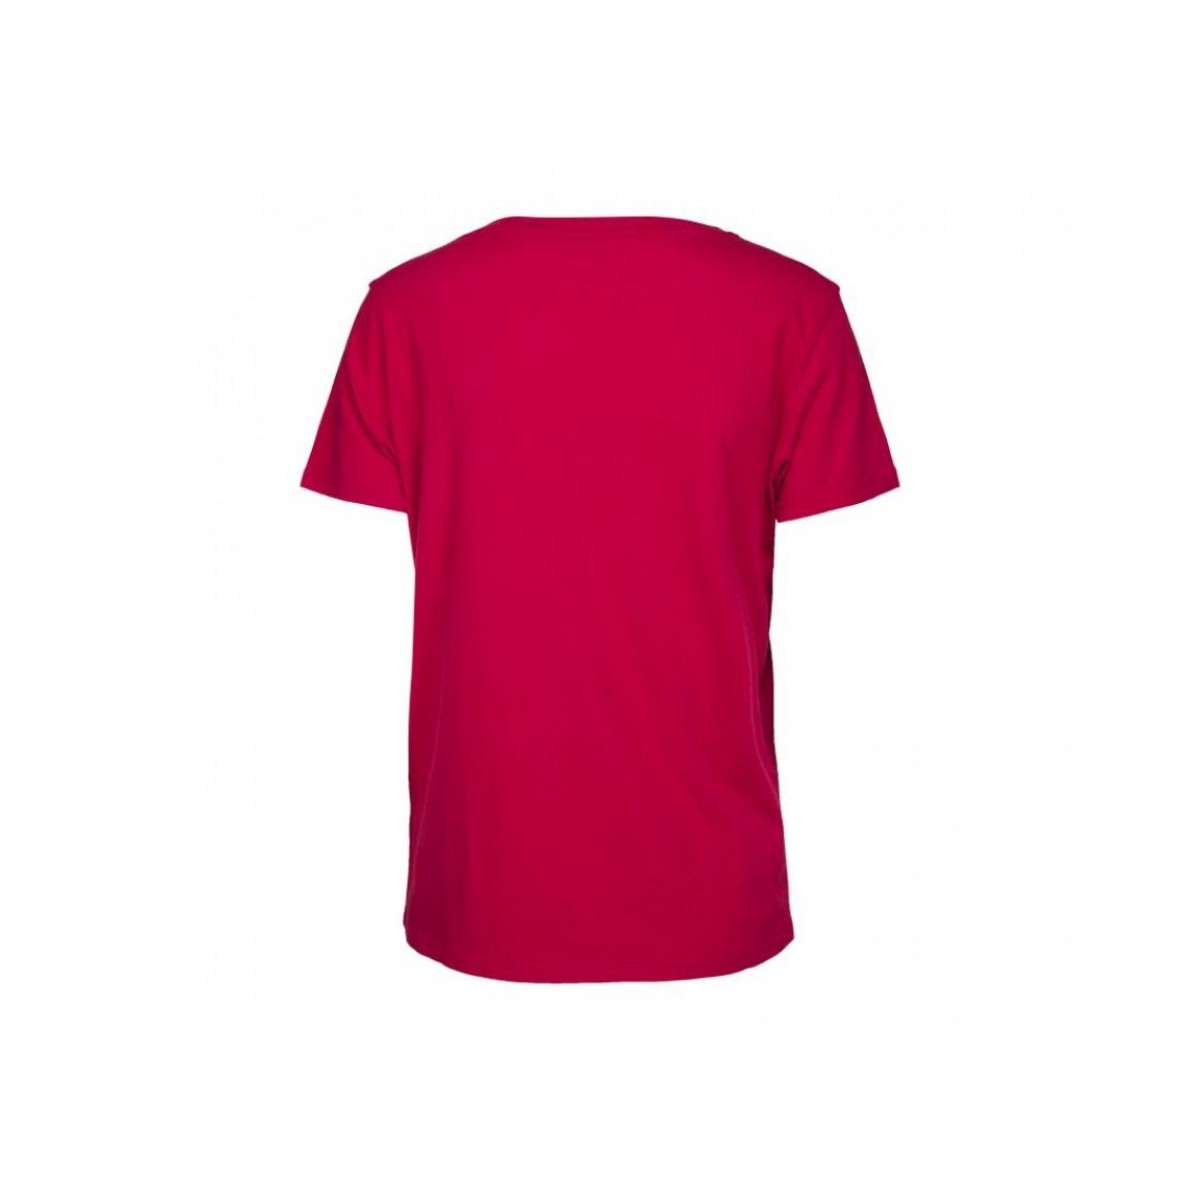 Sofie Schnoor S174222 T-Shirt Red-31